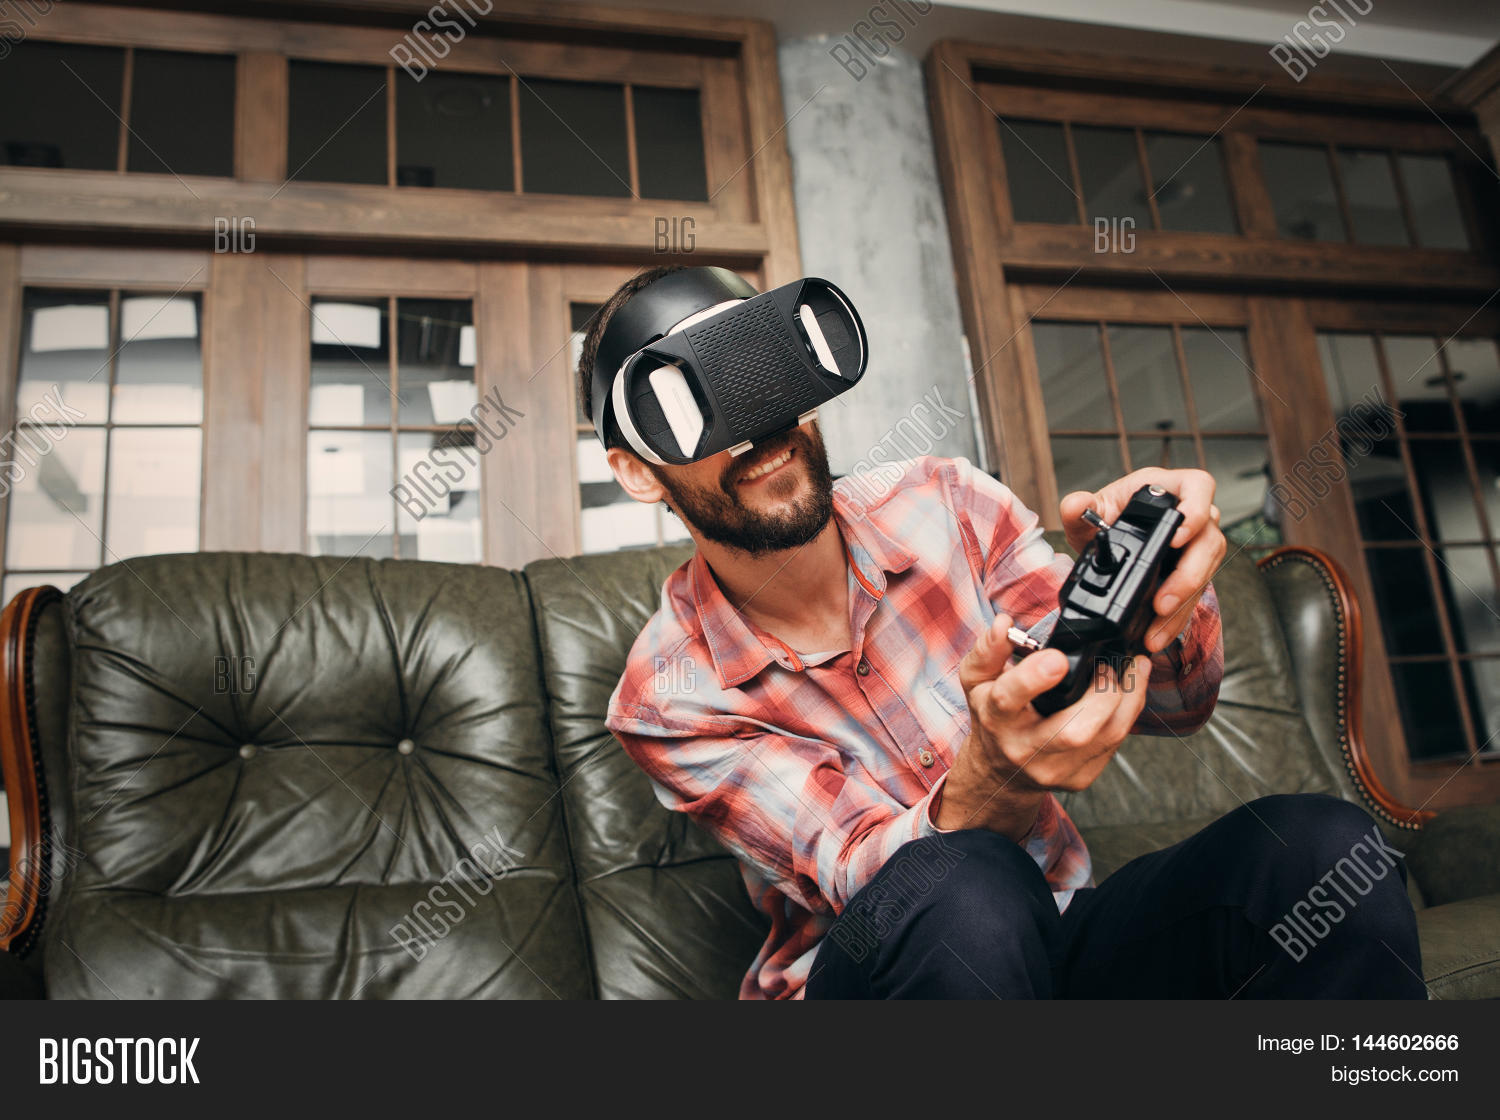 0b2bc0afeabe Young man playing video games in virtual reality headset. Male adult with  joystick and vr